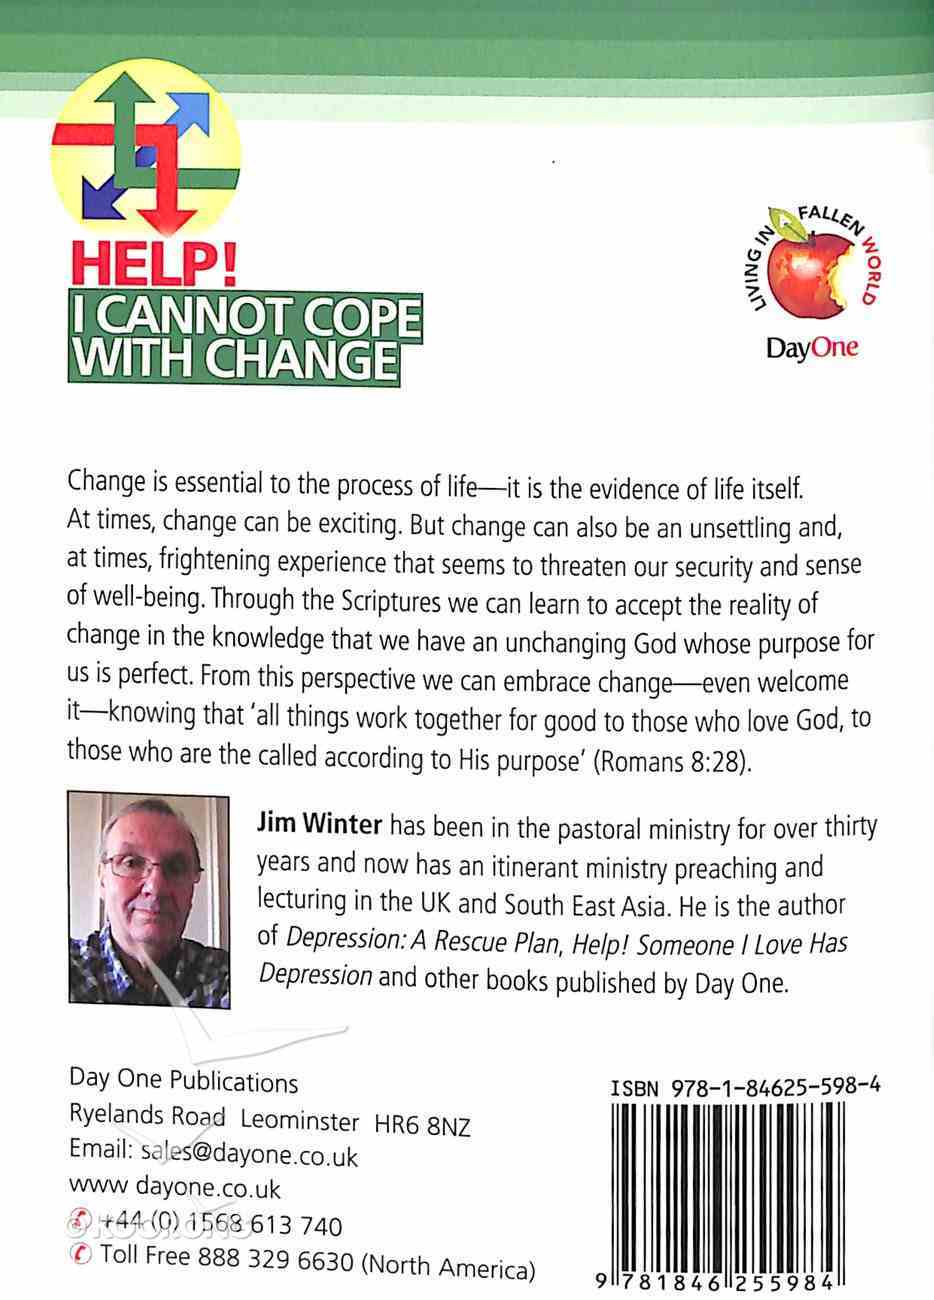 I Cannot Cope With Change (Help! Series (Dayone)) Booklet